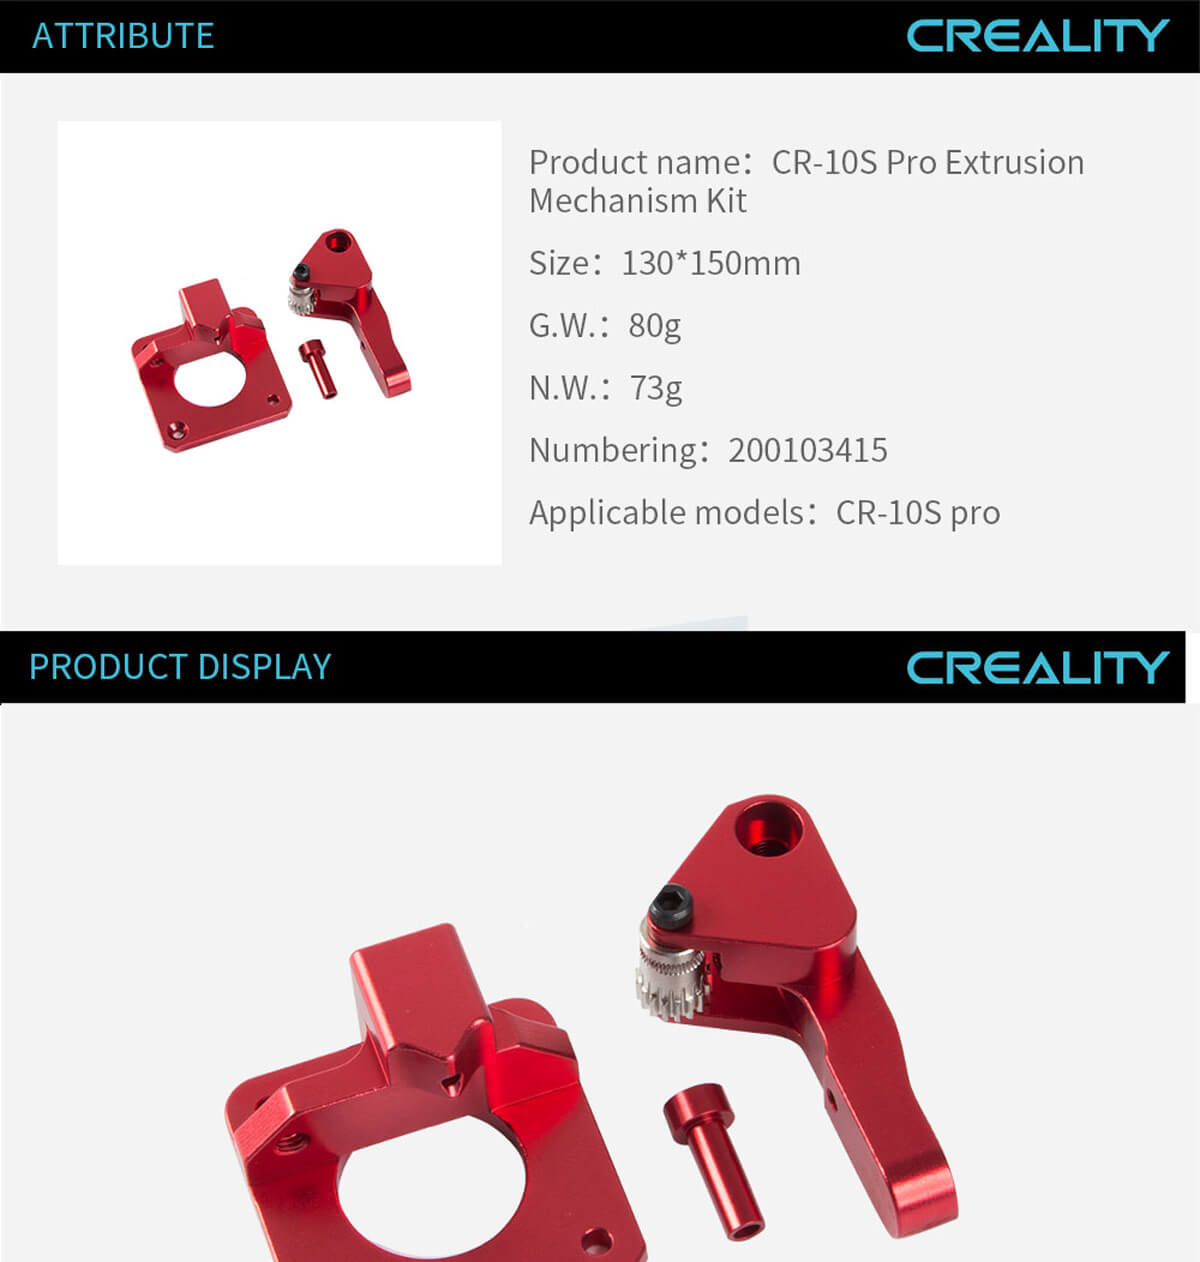 creality-3d-CR-10S-Pro-Extrusion-11